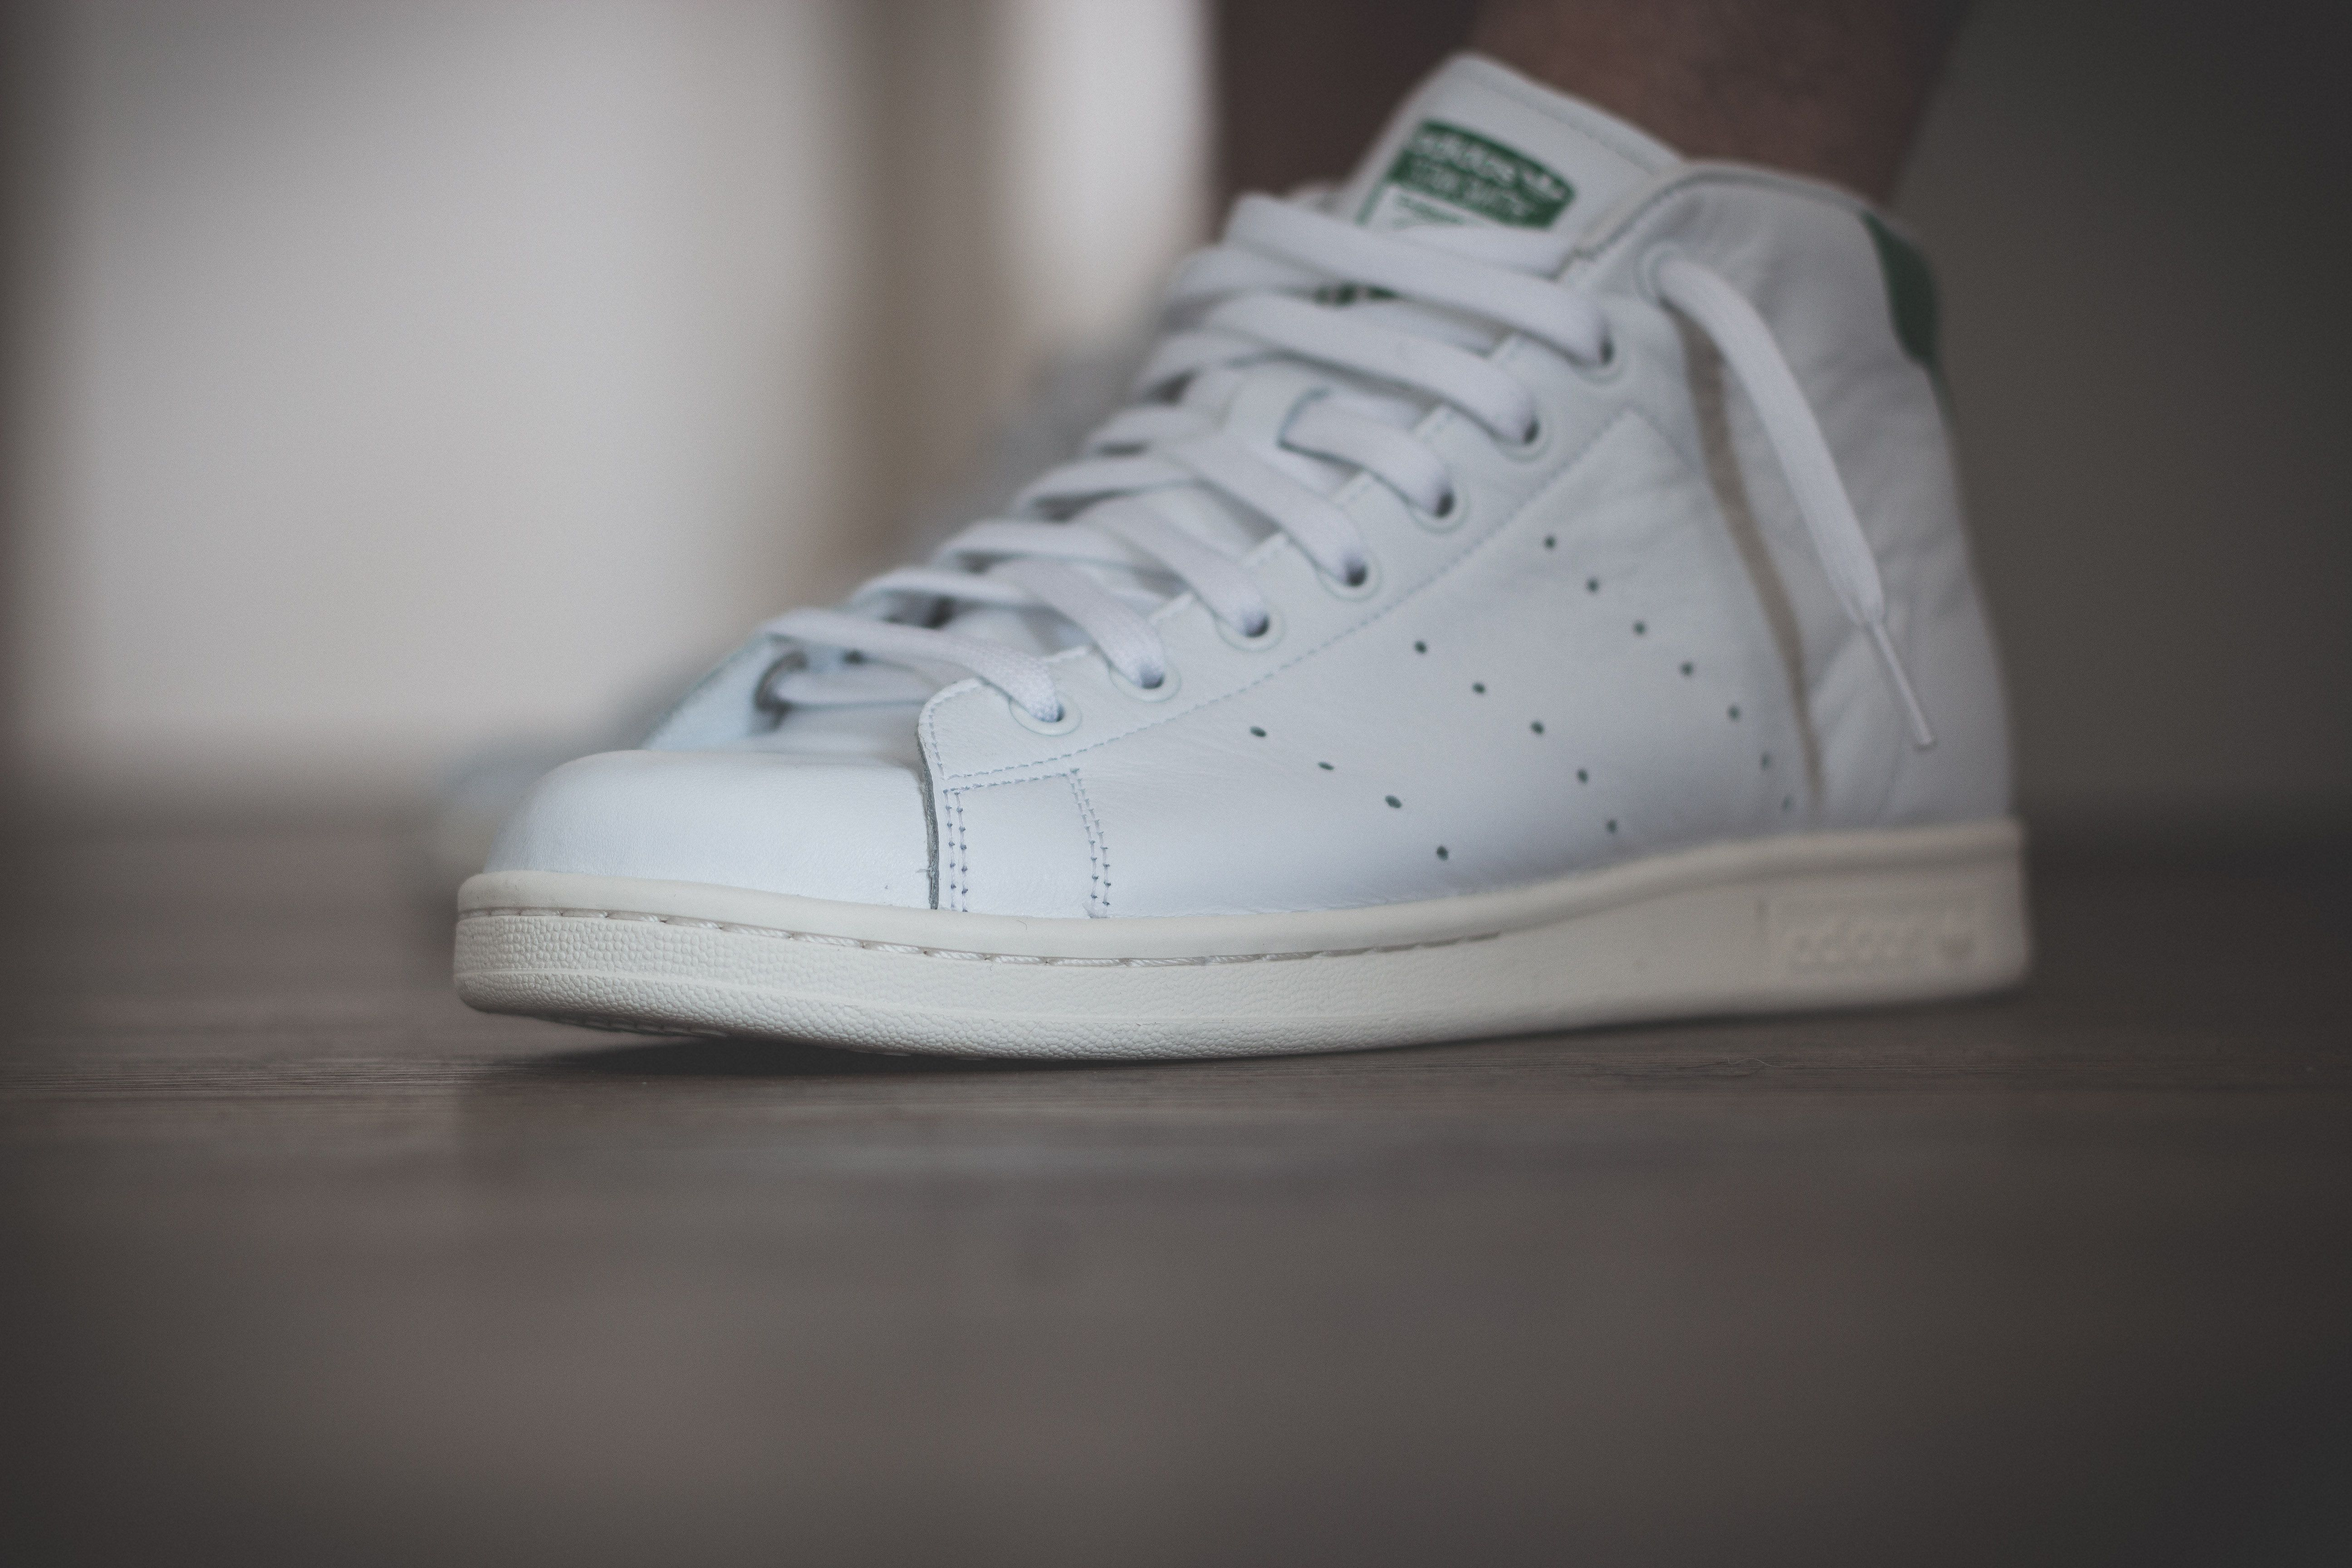 adidas Originals Stan Smith Mid - White Green Review